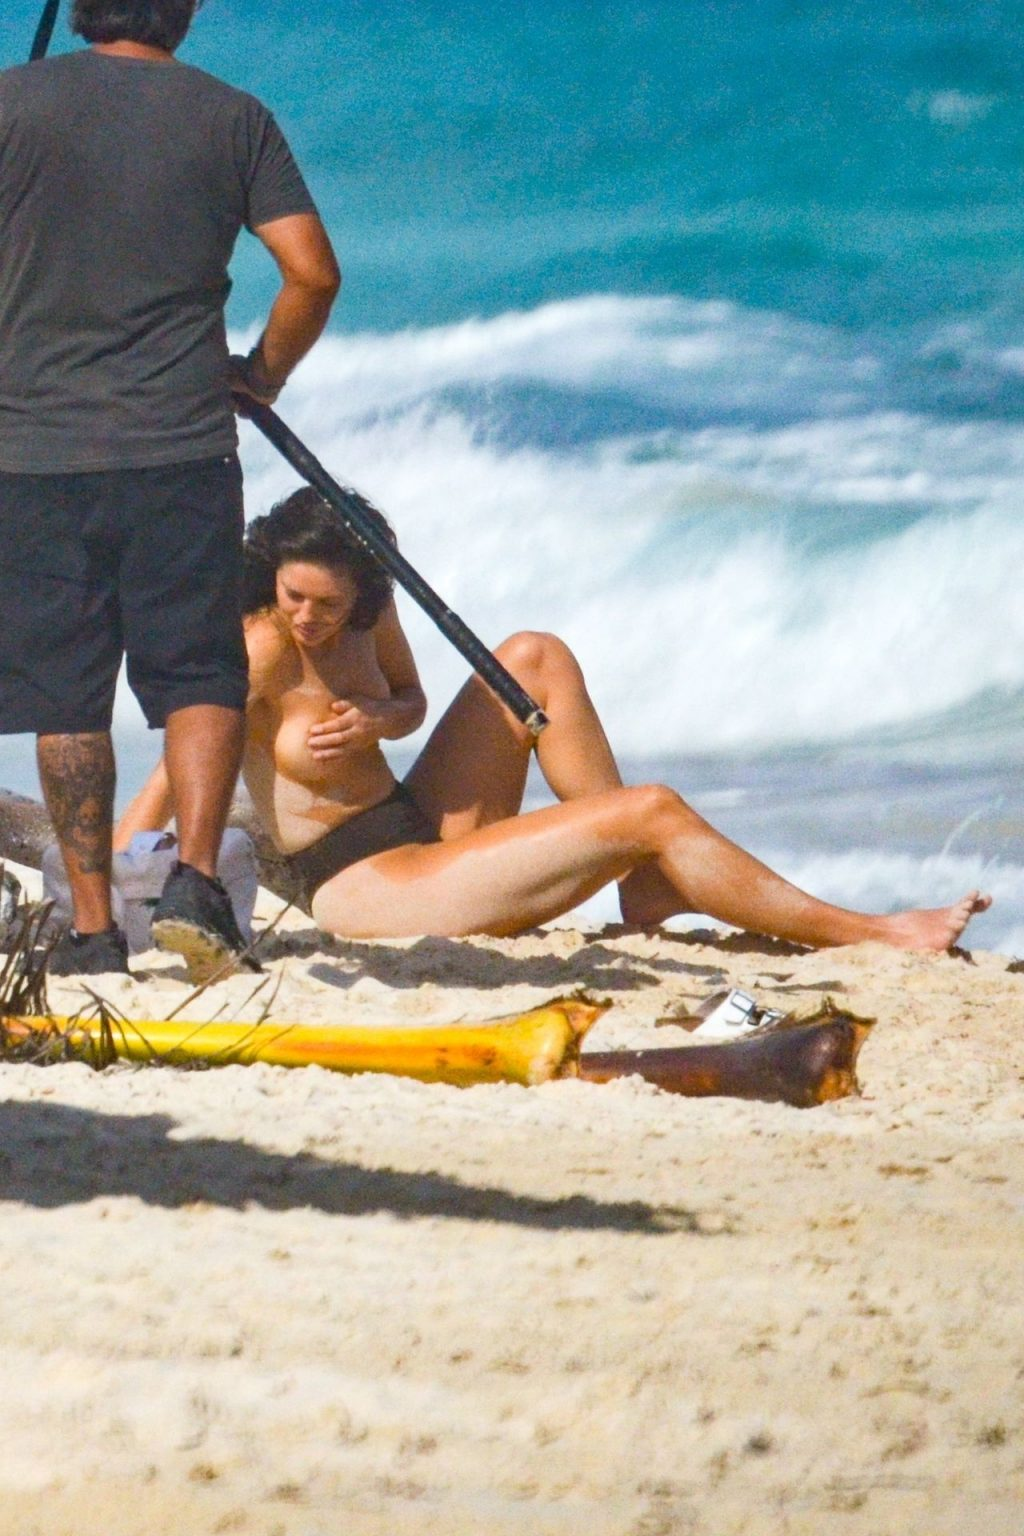 Emily DiDonato Sexy Topless The Fappening Blog 4 1024x1536 - Emily DiDonato Goes Topless for a Beachside Shoot in Tulum (55 Photos)